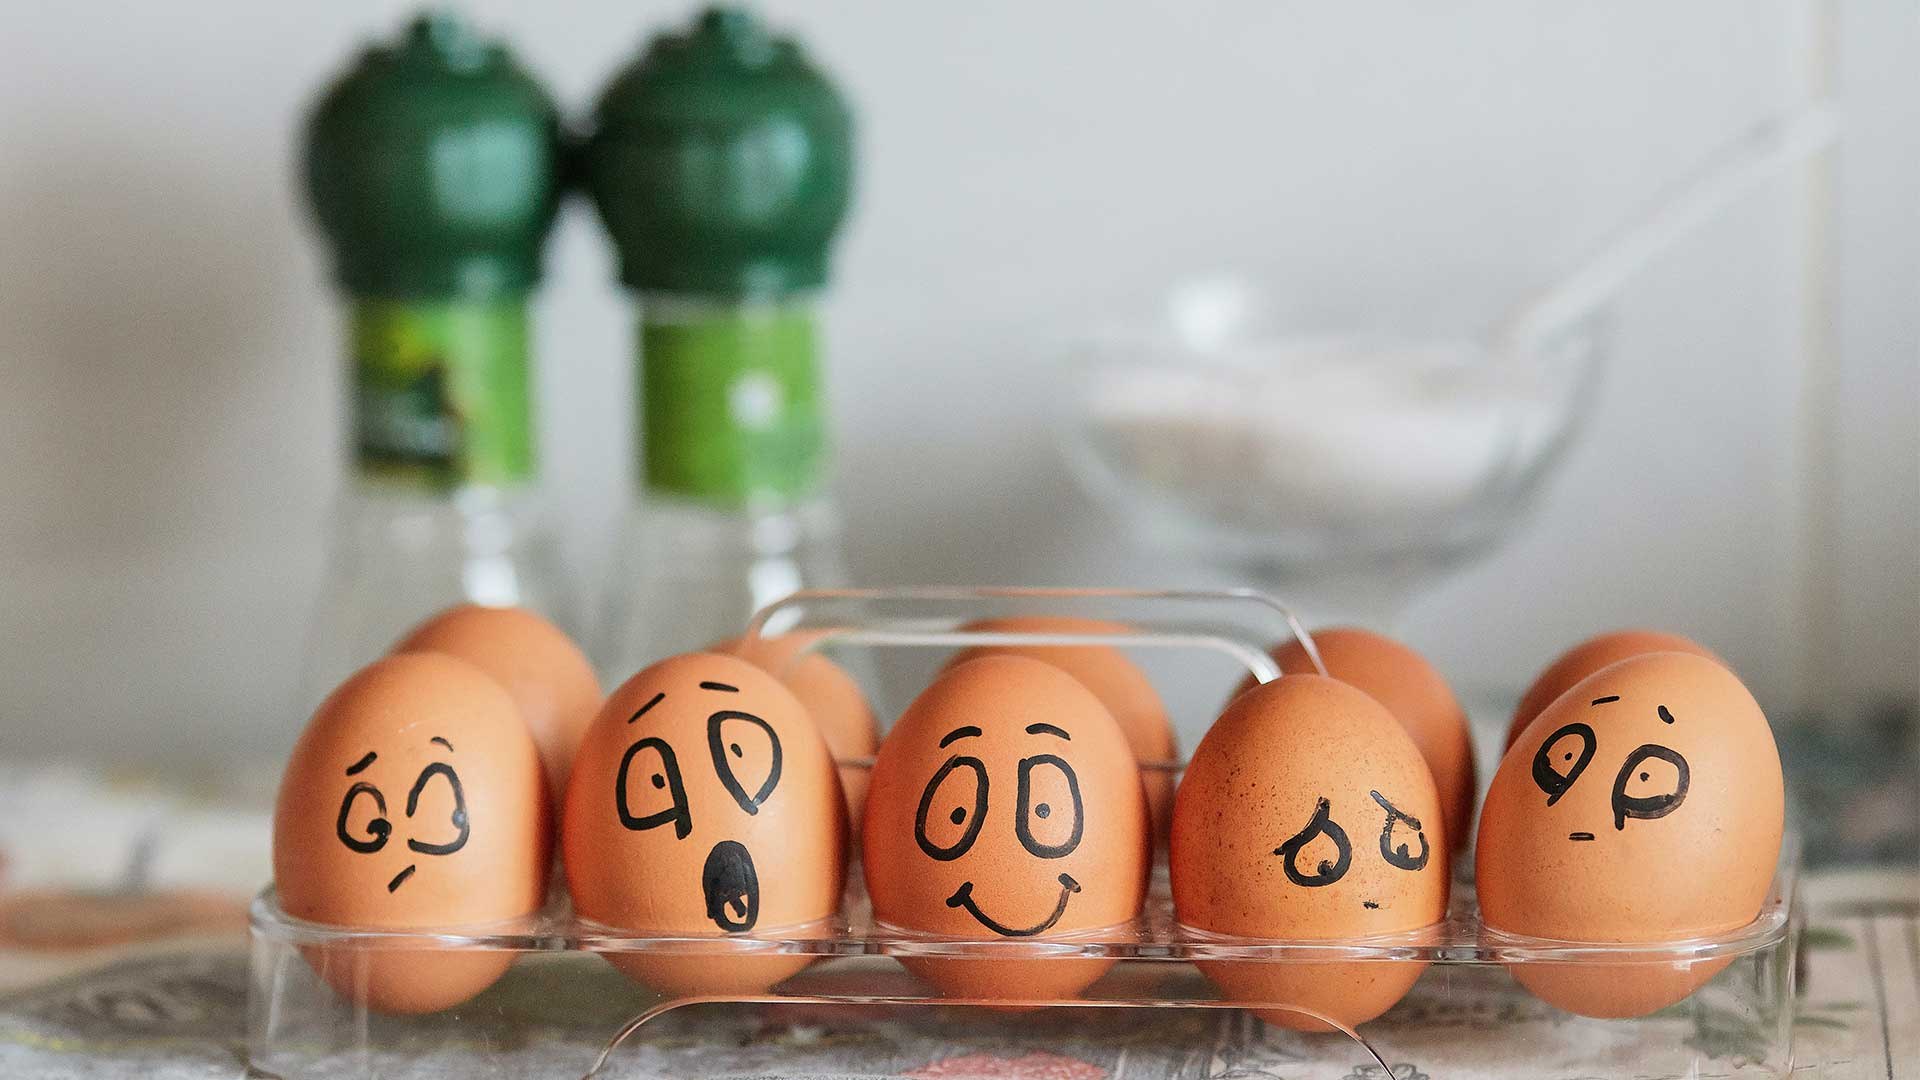 Eggs with various facial expressions drawn on them with a marker